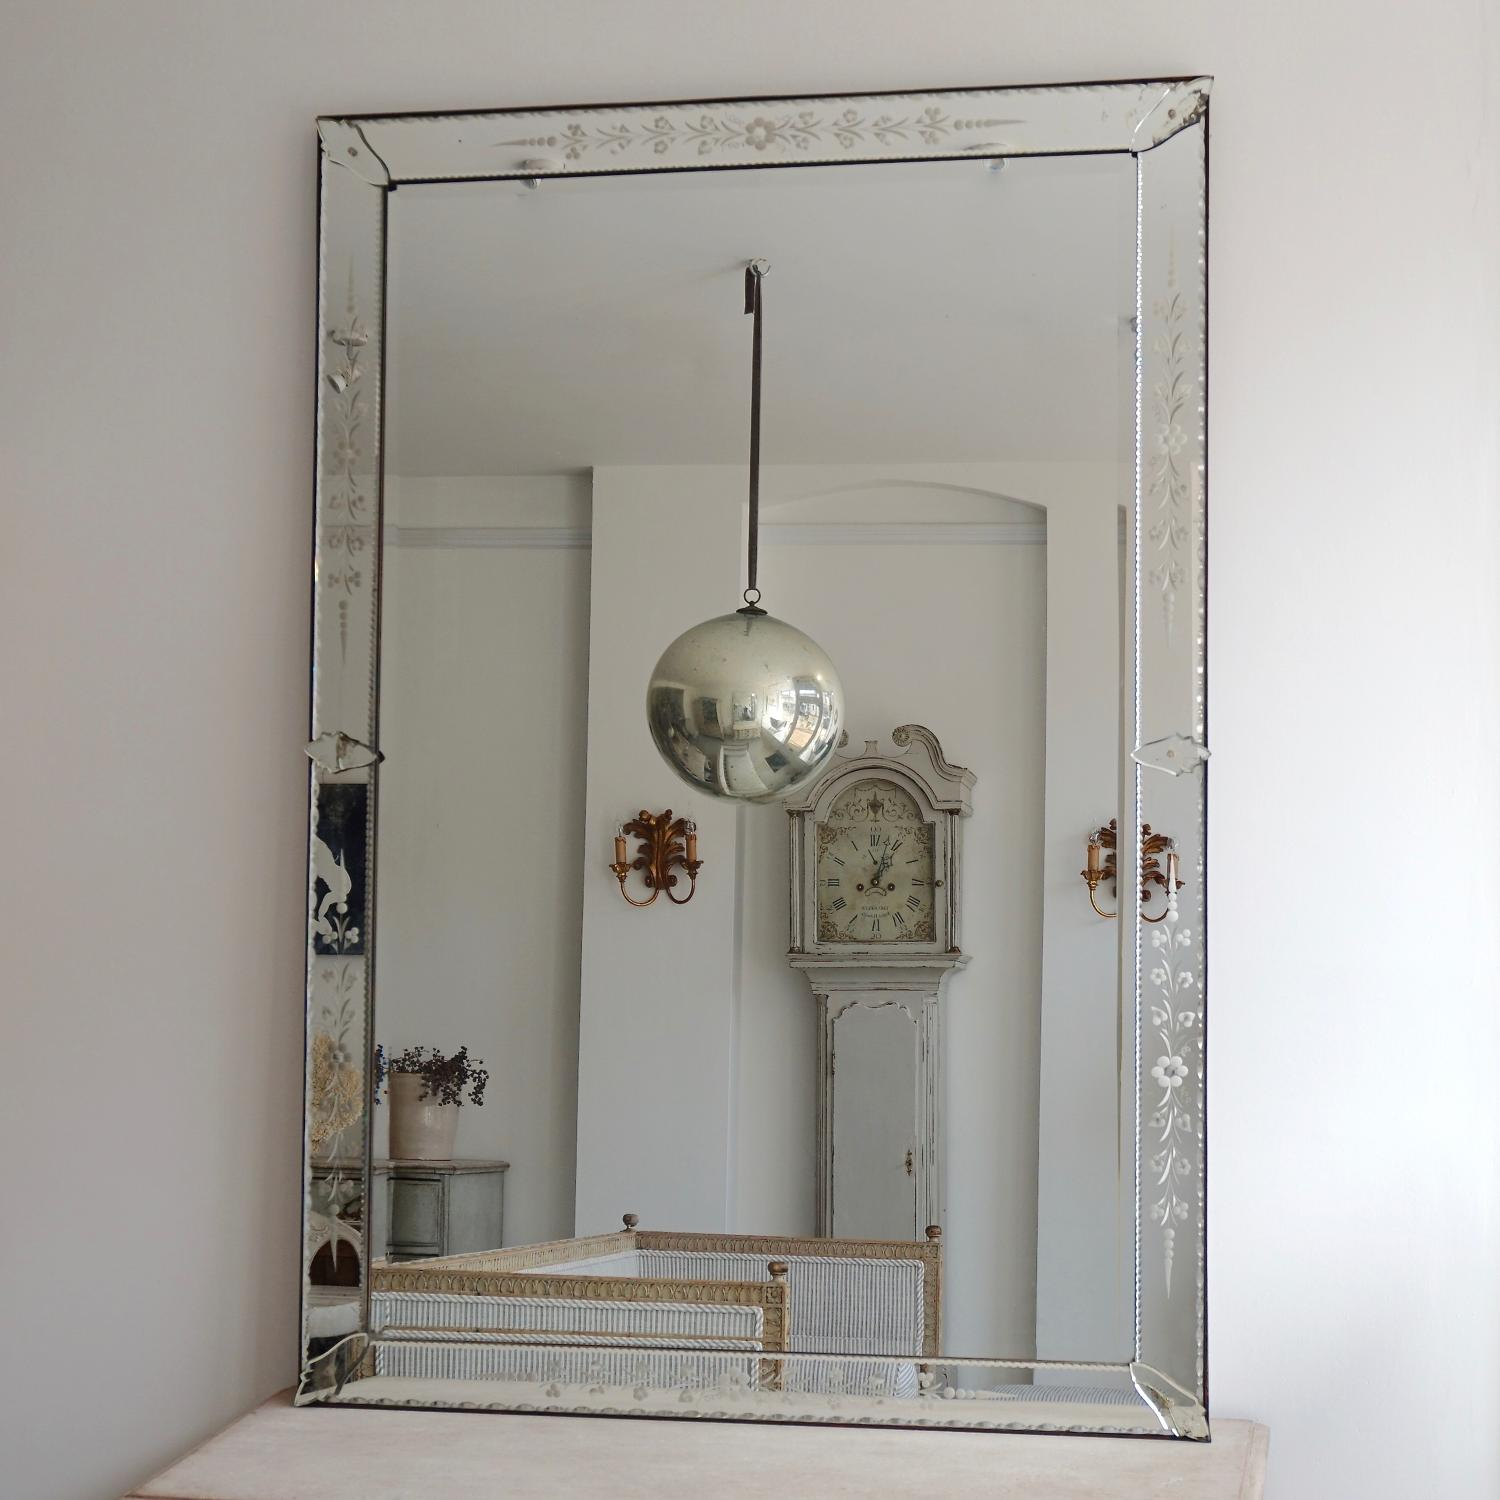 GRAND SCALE ANTIQUE VENETIAN MIRROR